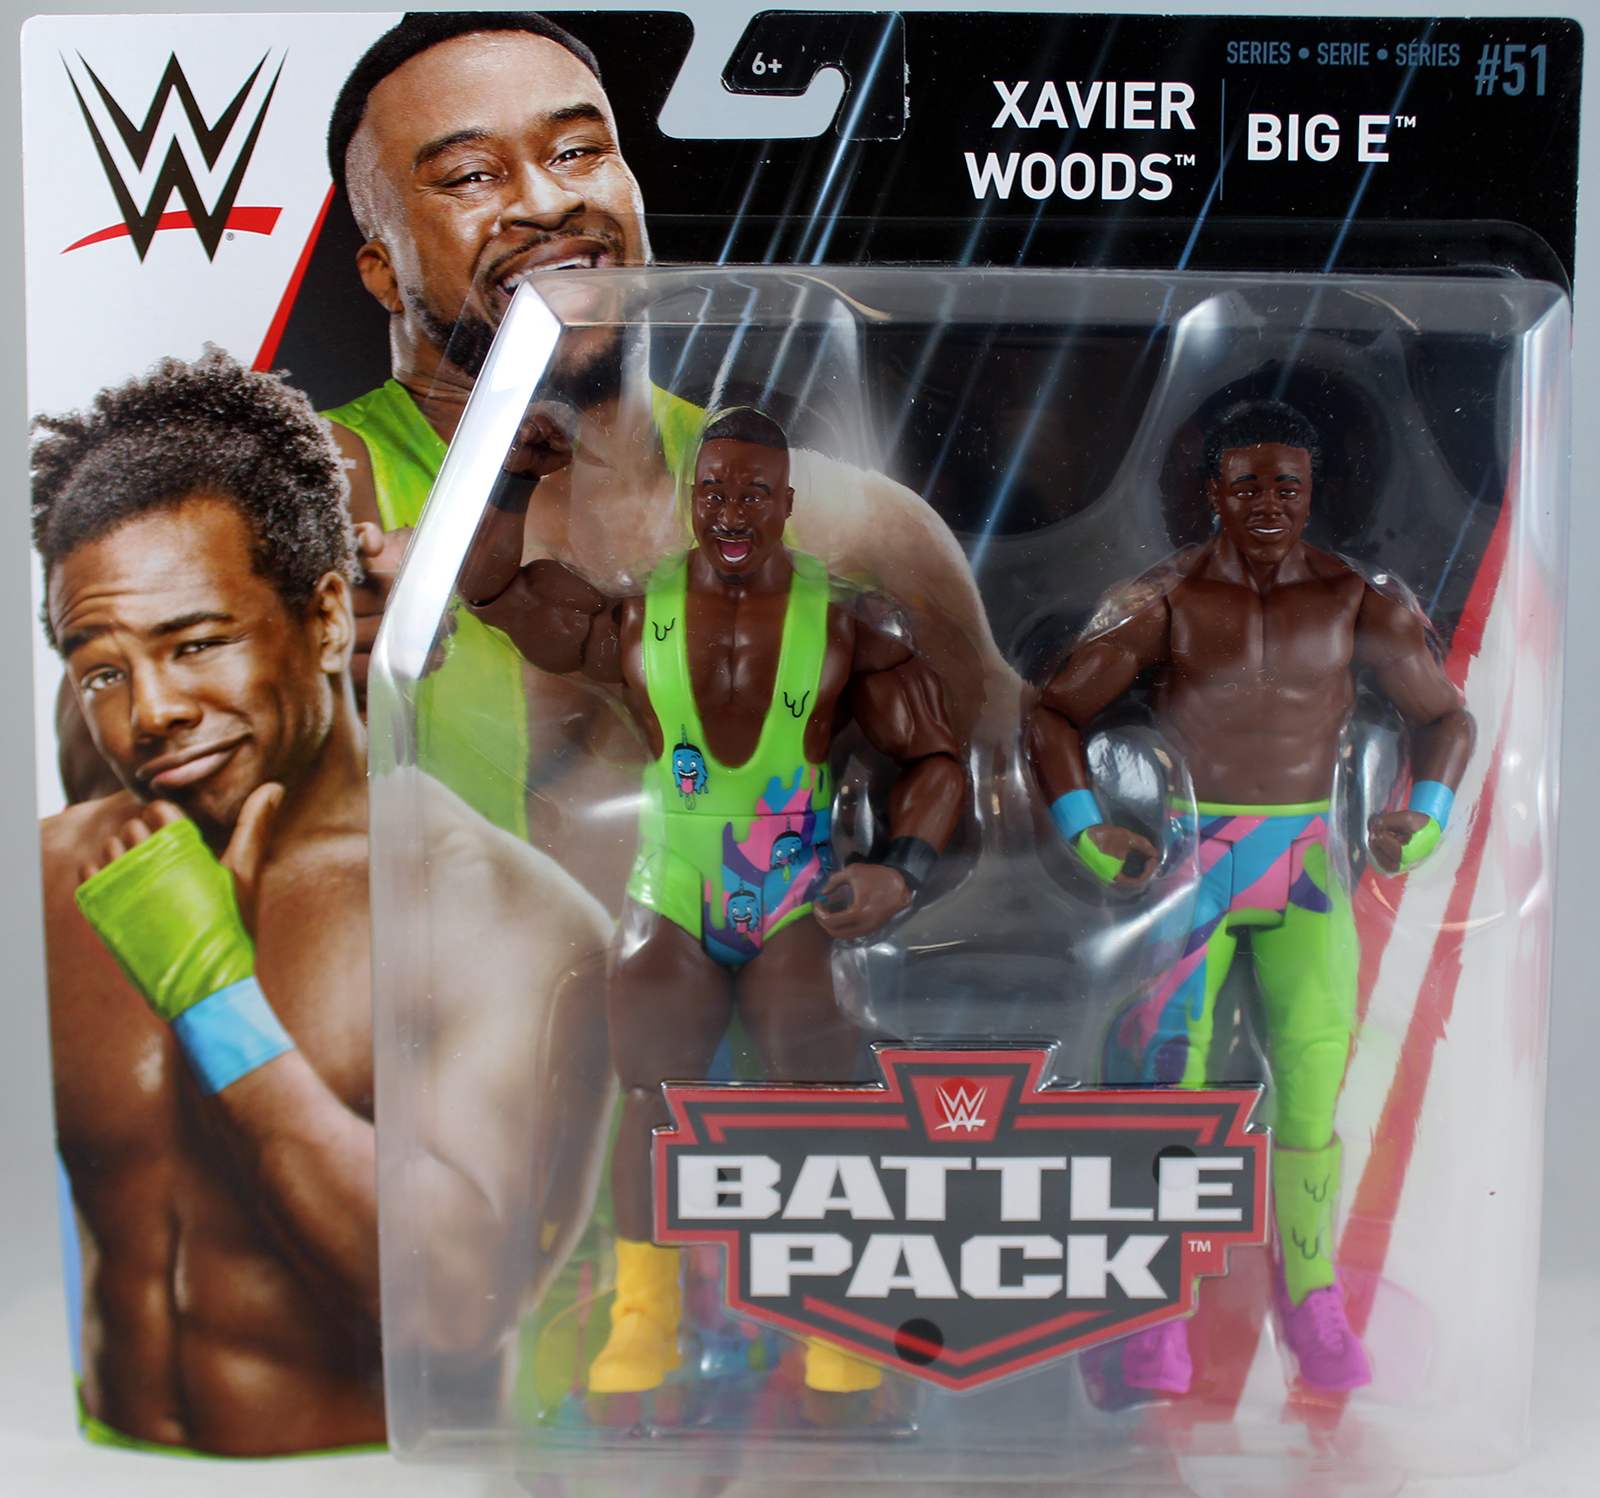 Big E & Xavier Woods (New Day) WWE Battle Packs 51 Toy Wrestling Action Figures by Mattel